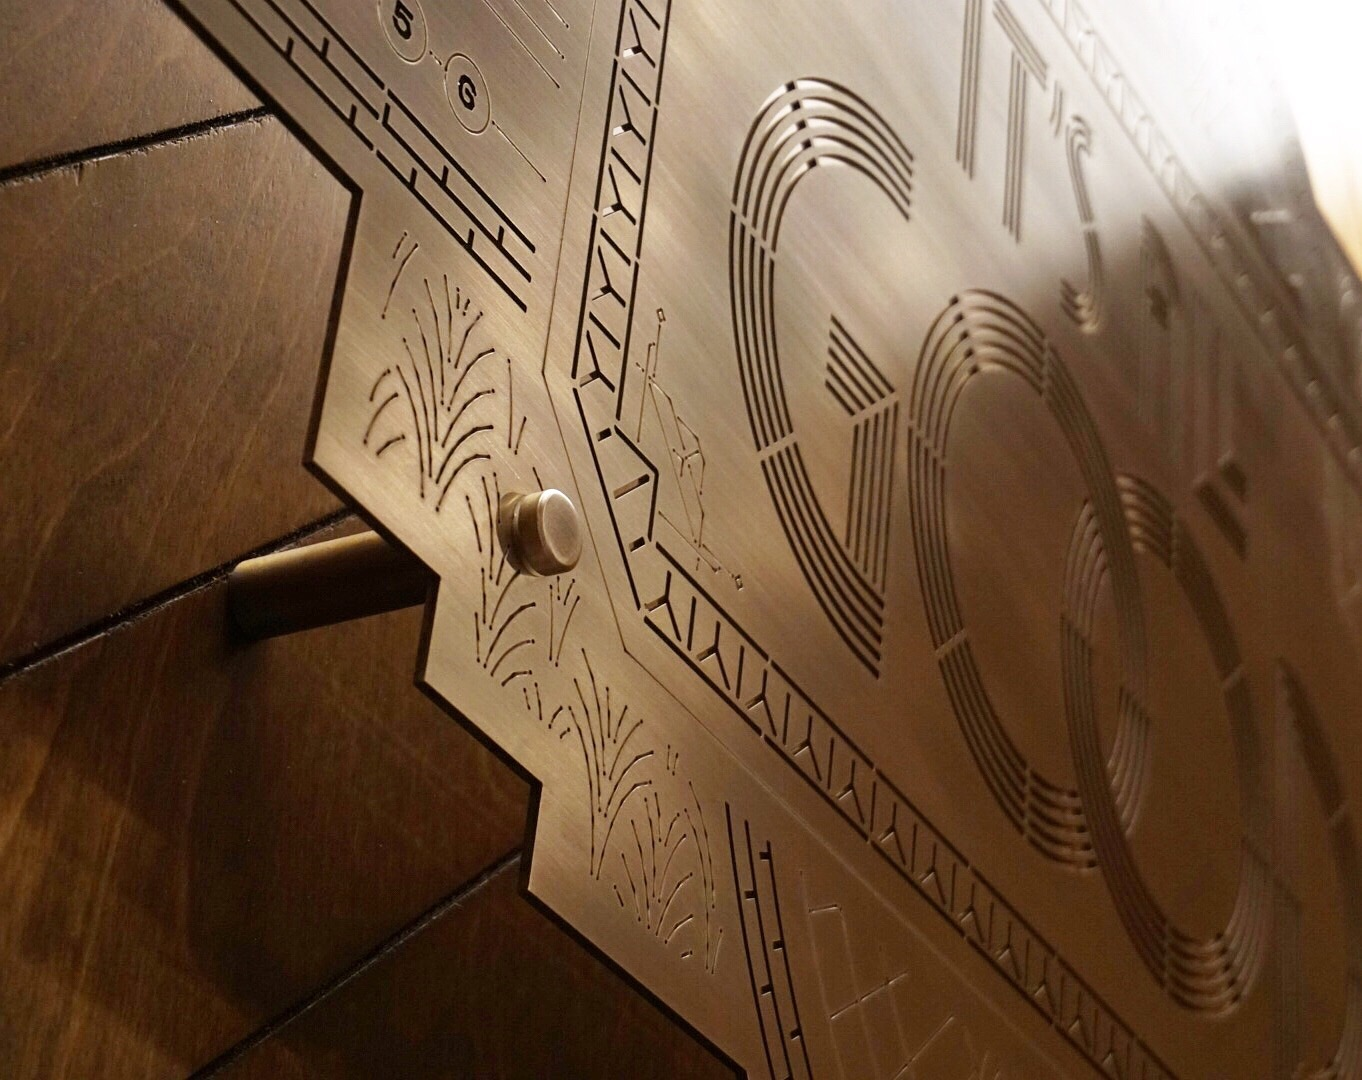 """""""Same number, same hood. It's all Good""""   Engraved brass installation for WeWork 57th Street. nspired by NYC art deco buildings, subway rats and Biggie lyrics.  Art Direction by Jeremiah Britton, Interior Design by Alex Snyder"""